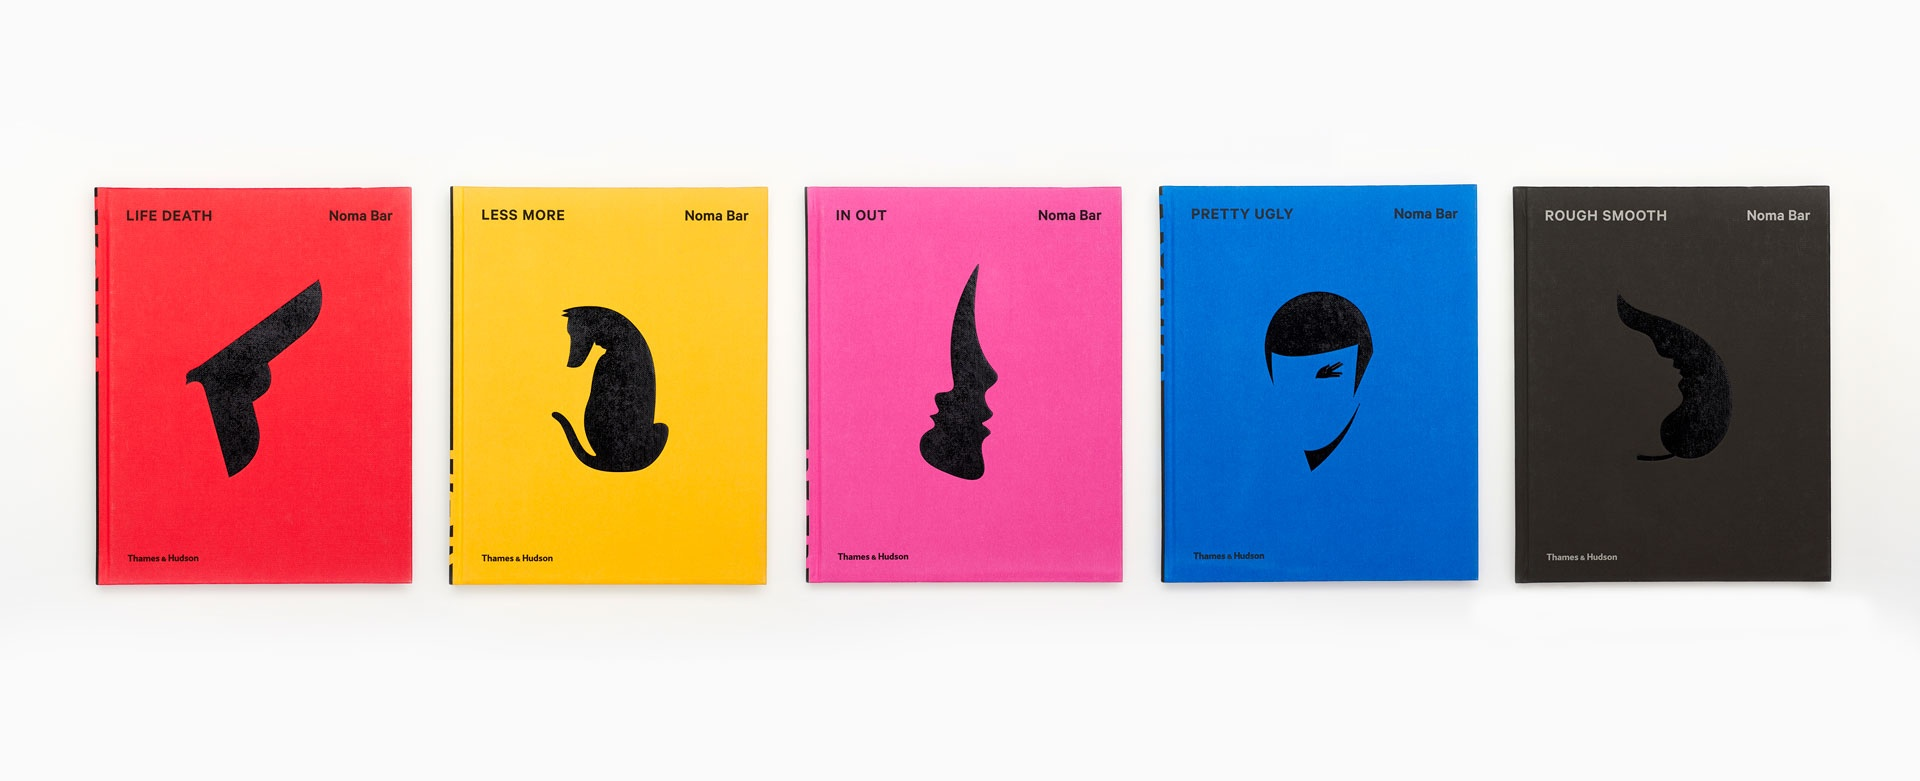 Noma Bar - Bittersweet - Limited Edition Monograph published by Thames & Hudson